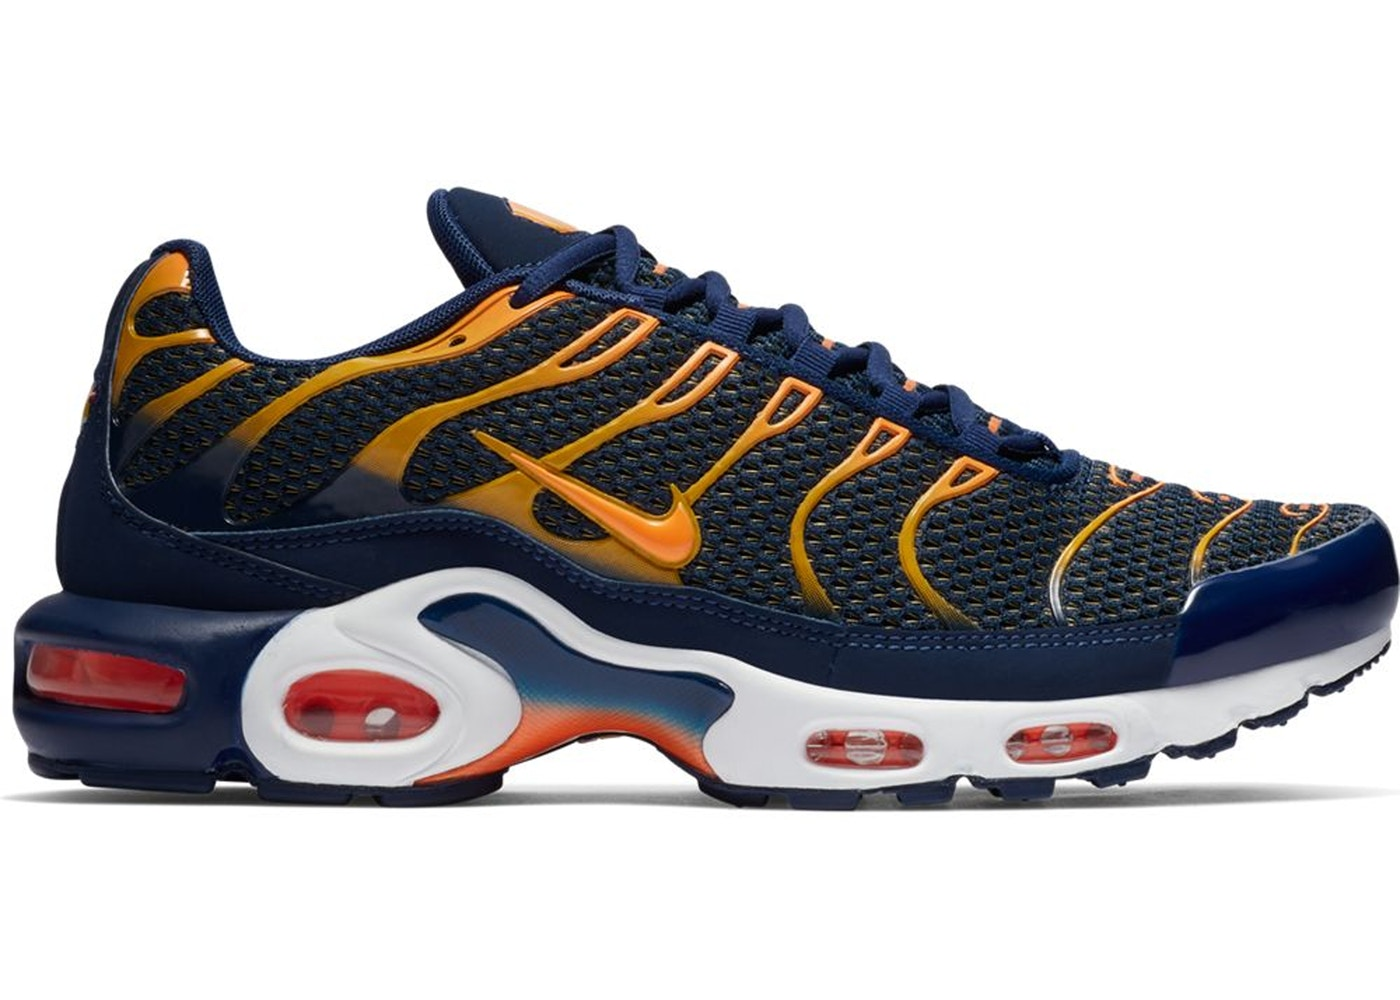 Nike Air Max Plus Blue Void University Gold 852630 408